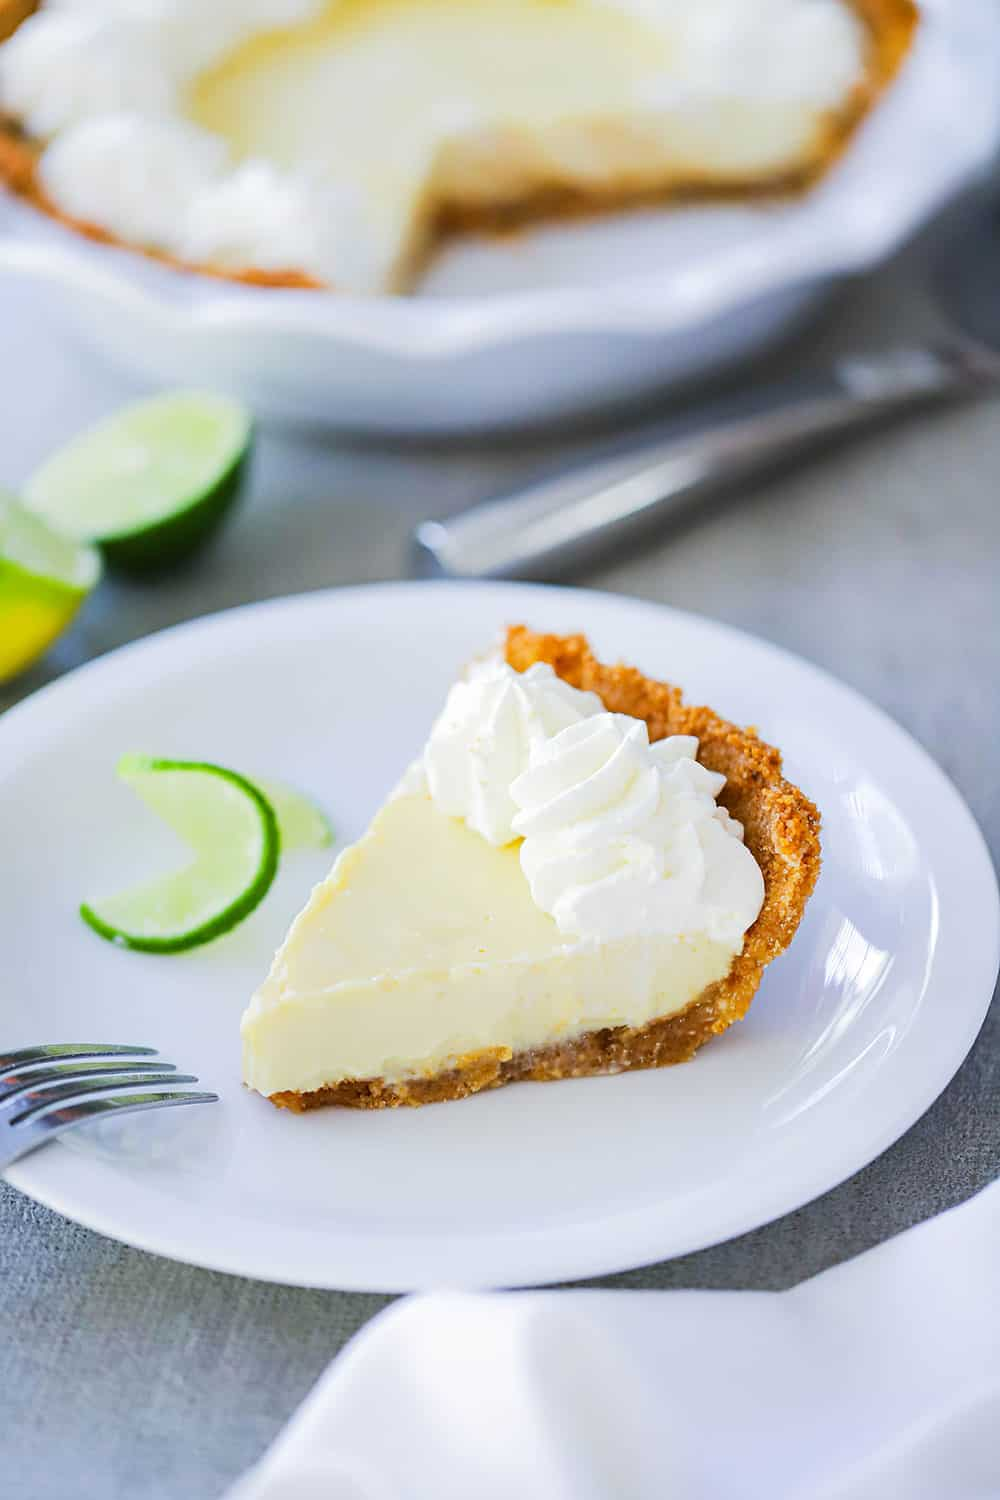 A individual slice of key lime pie on a white plate with a curled lime slice next to it.